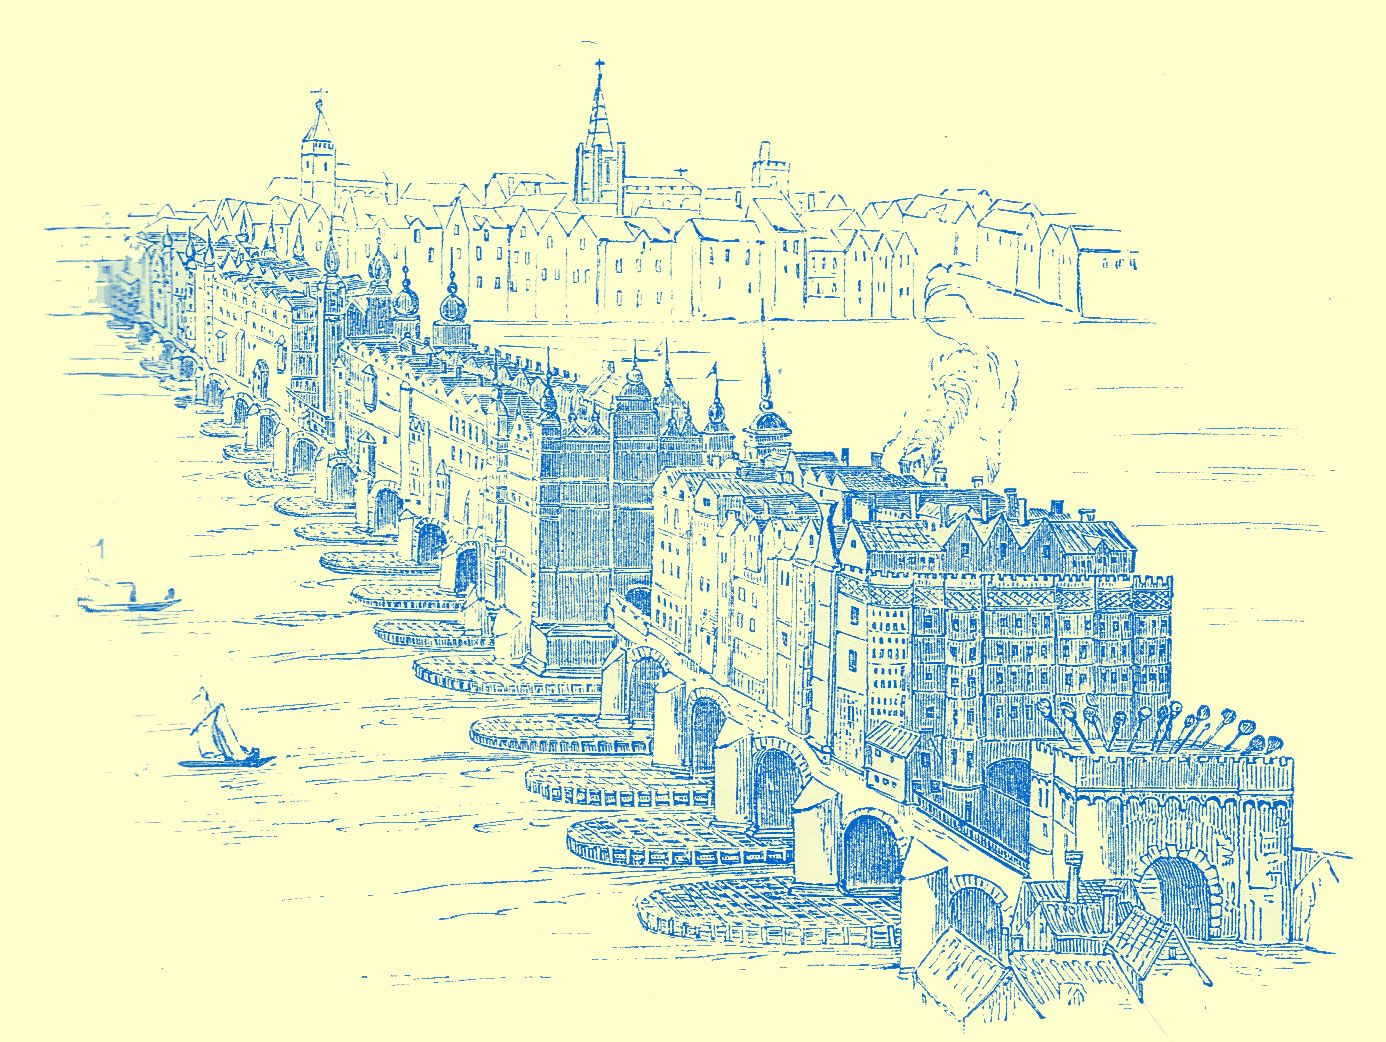 An engraving of the old london bridge with many multi storied an engraving of the old london bridge with many multi storied buildings crowded all along malvernweather Choice Image